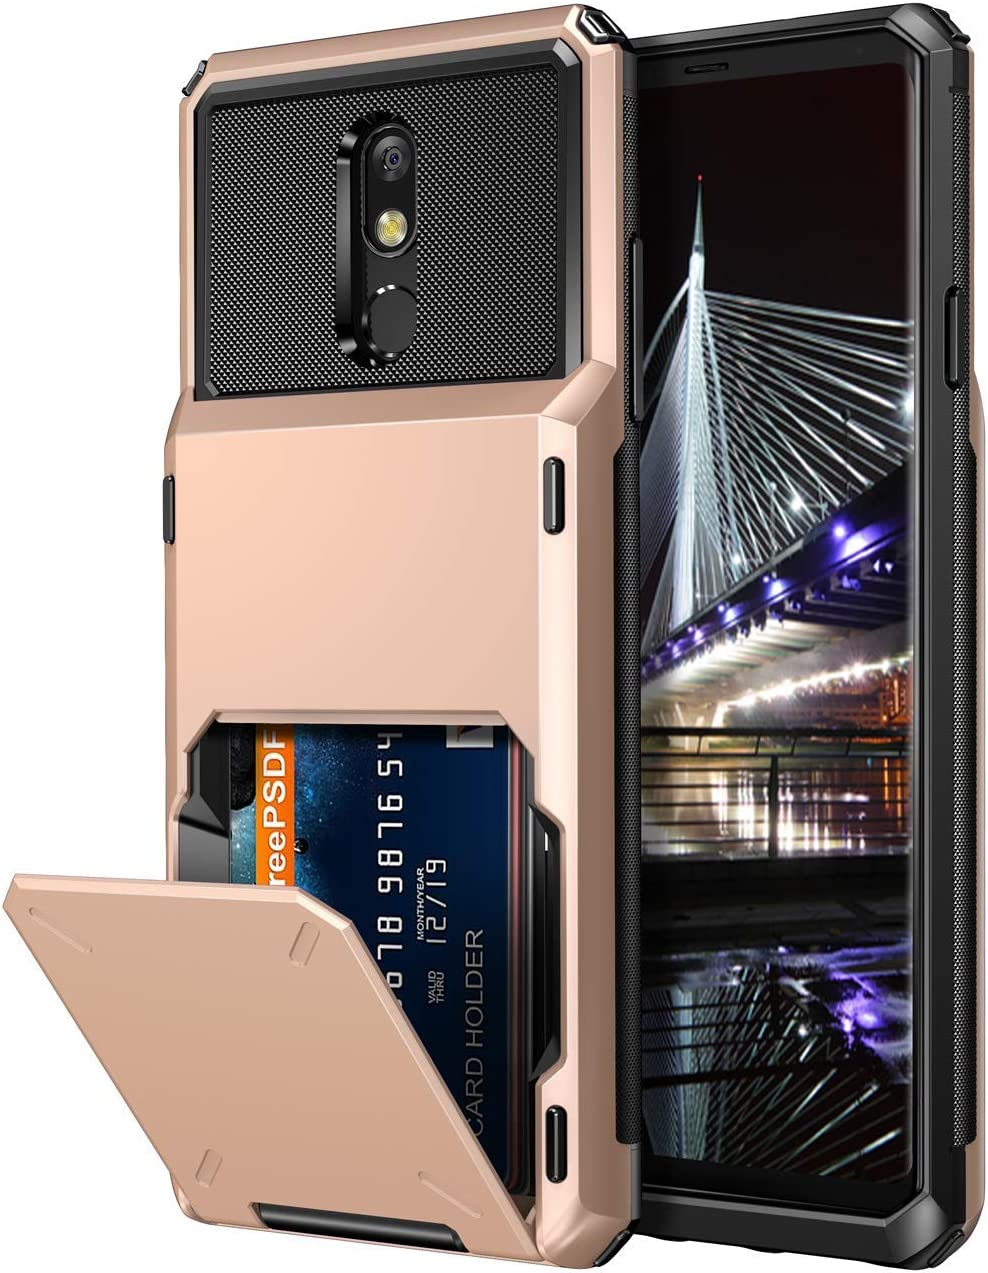 Vofolen Case for LG Stylo 5 Case Wallet [4-Card Pocket] Credit Card Holder ID Slot Anti-scratch Dual Layer Protective Bumper Tough Rubber Armor Non-slip Hard Shell Cover Case for LG Stylo 5 -Rose Gold